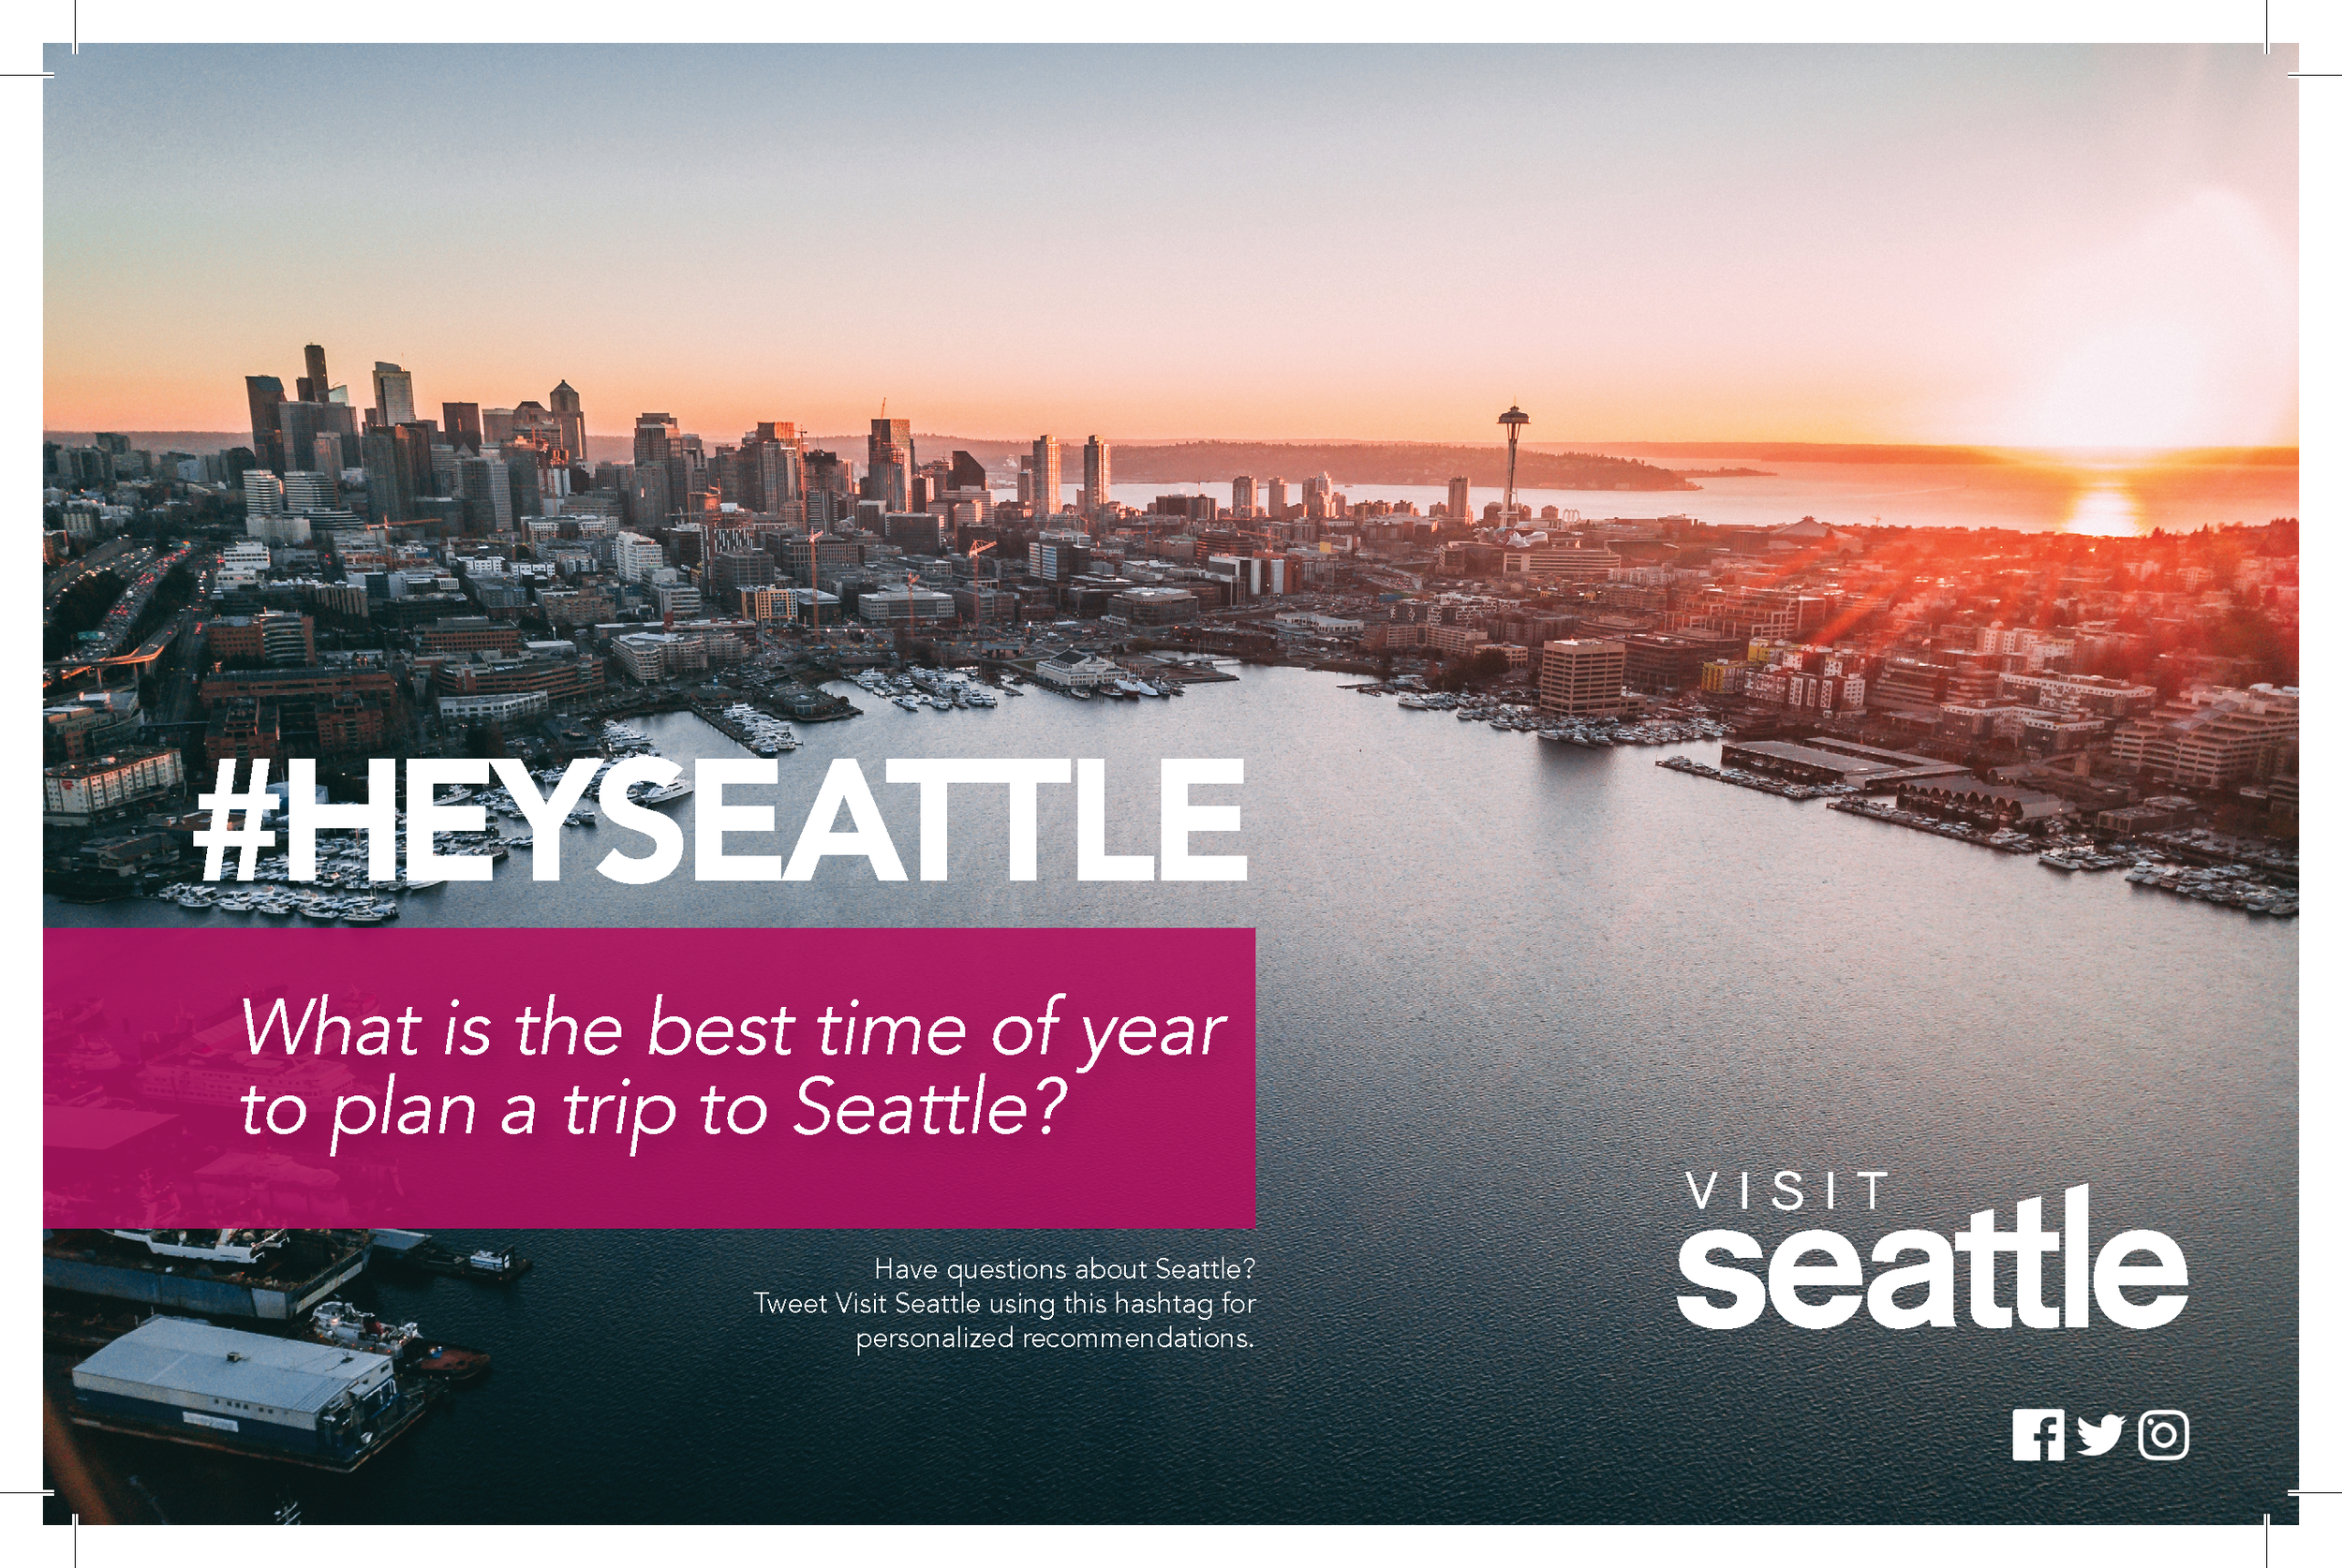 VisitSeattle-ad_Bassett2_Page_1.png